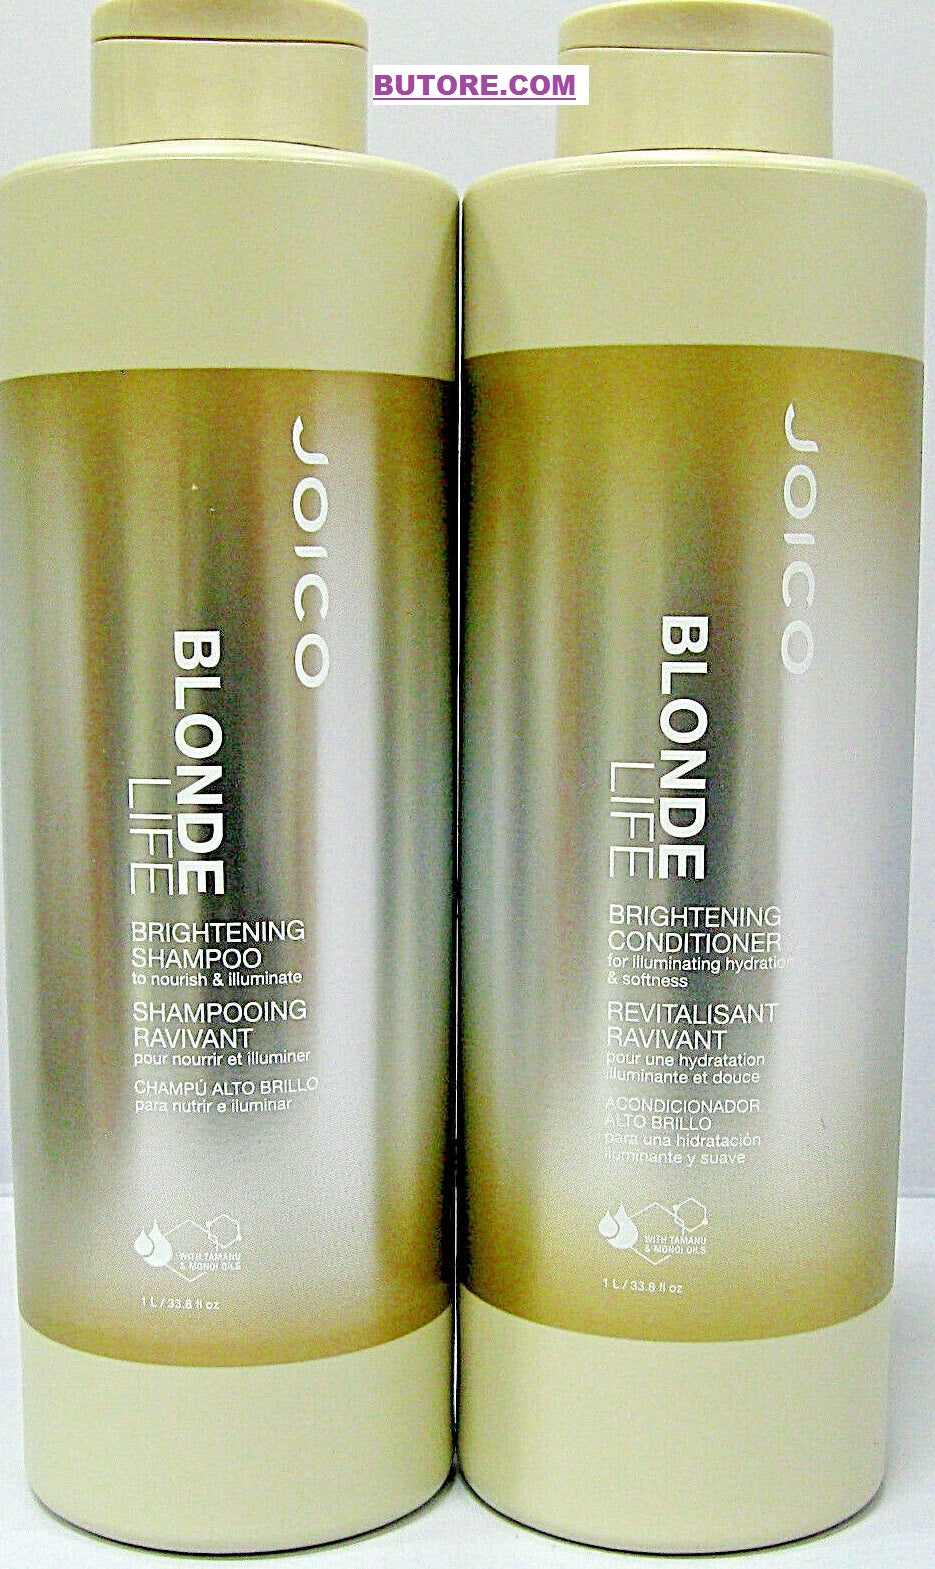 Shampoo & Conditioner 33.8 oz